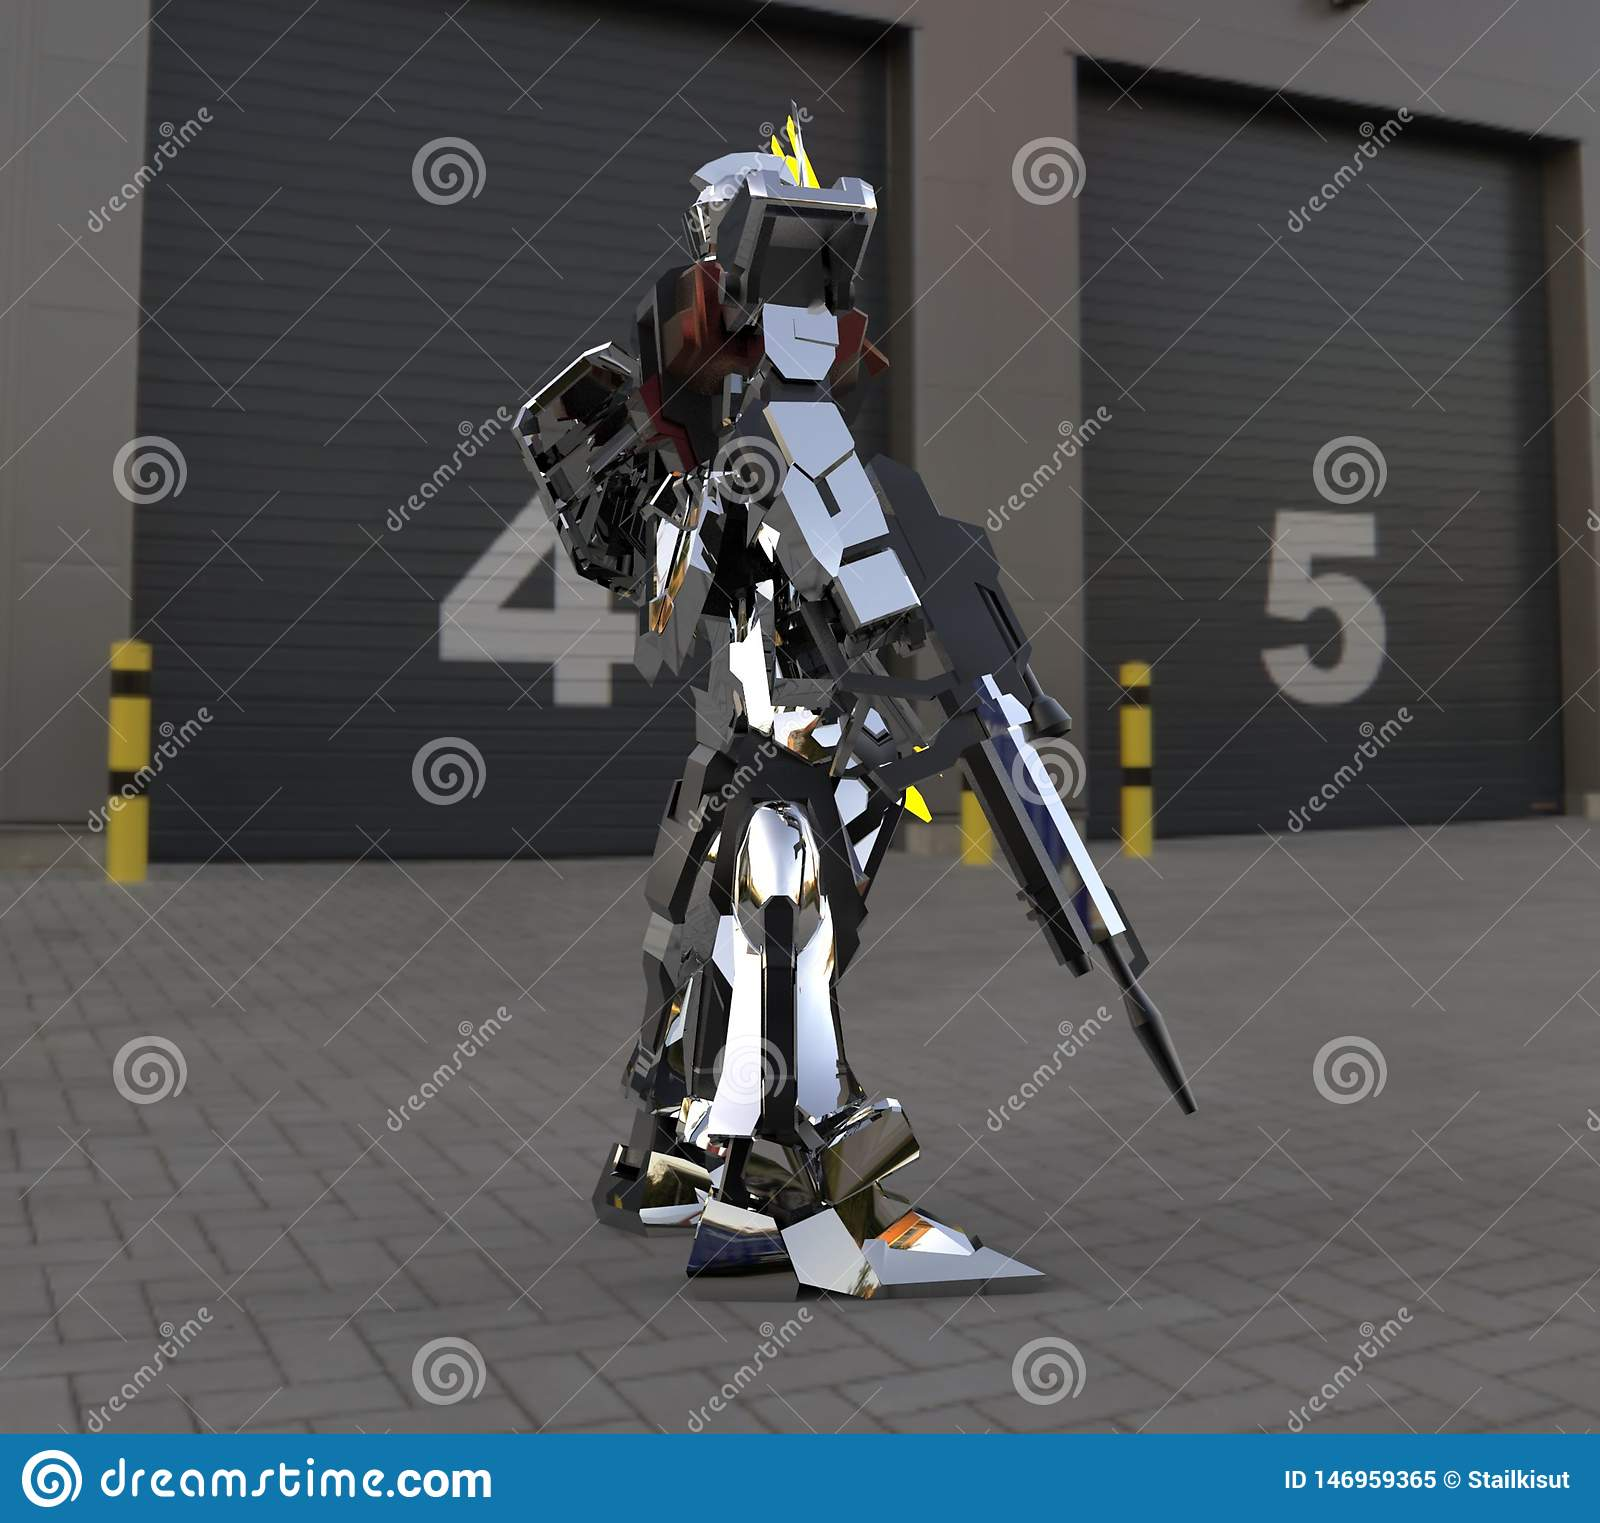 Sci-fi mech soldier standing on a landscape background. Military futuristic robot with a green and gray color metal. Mech controll